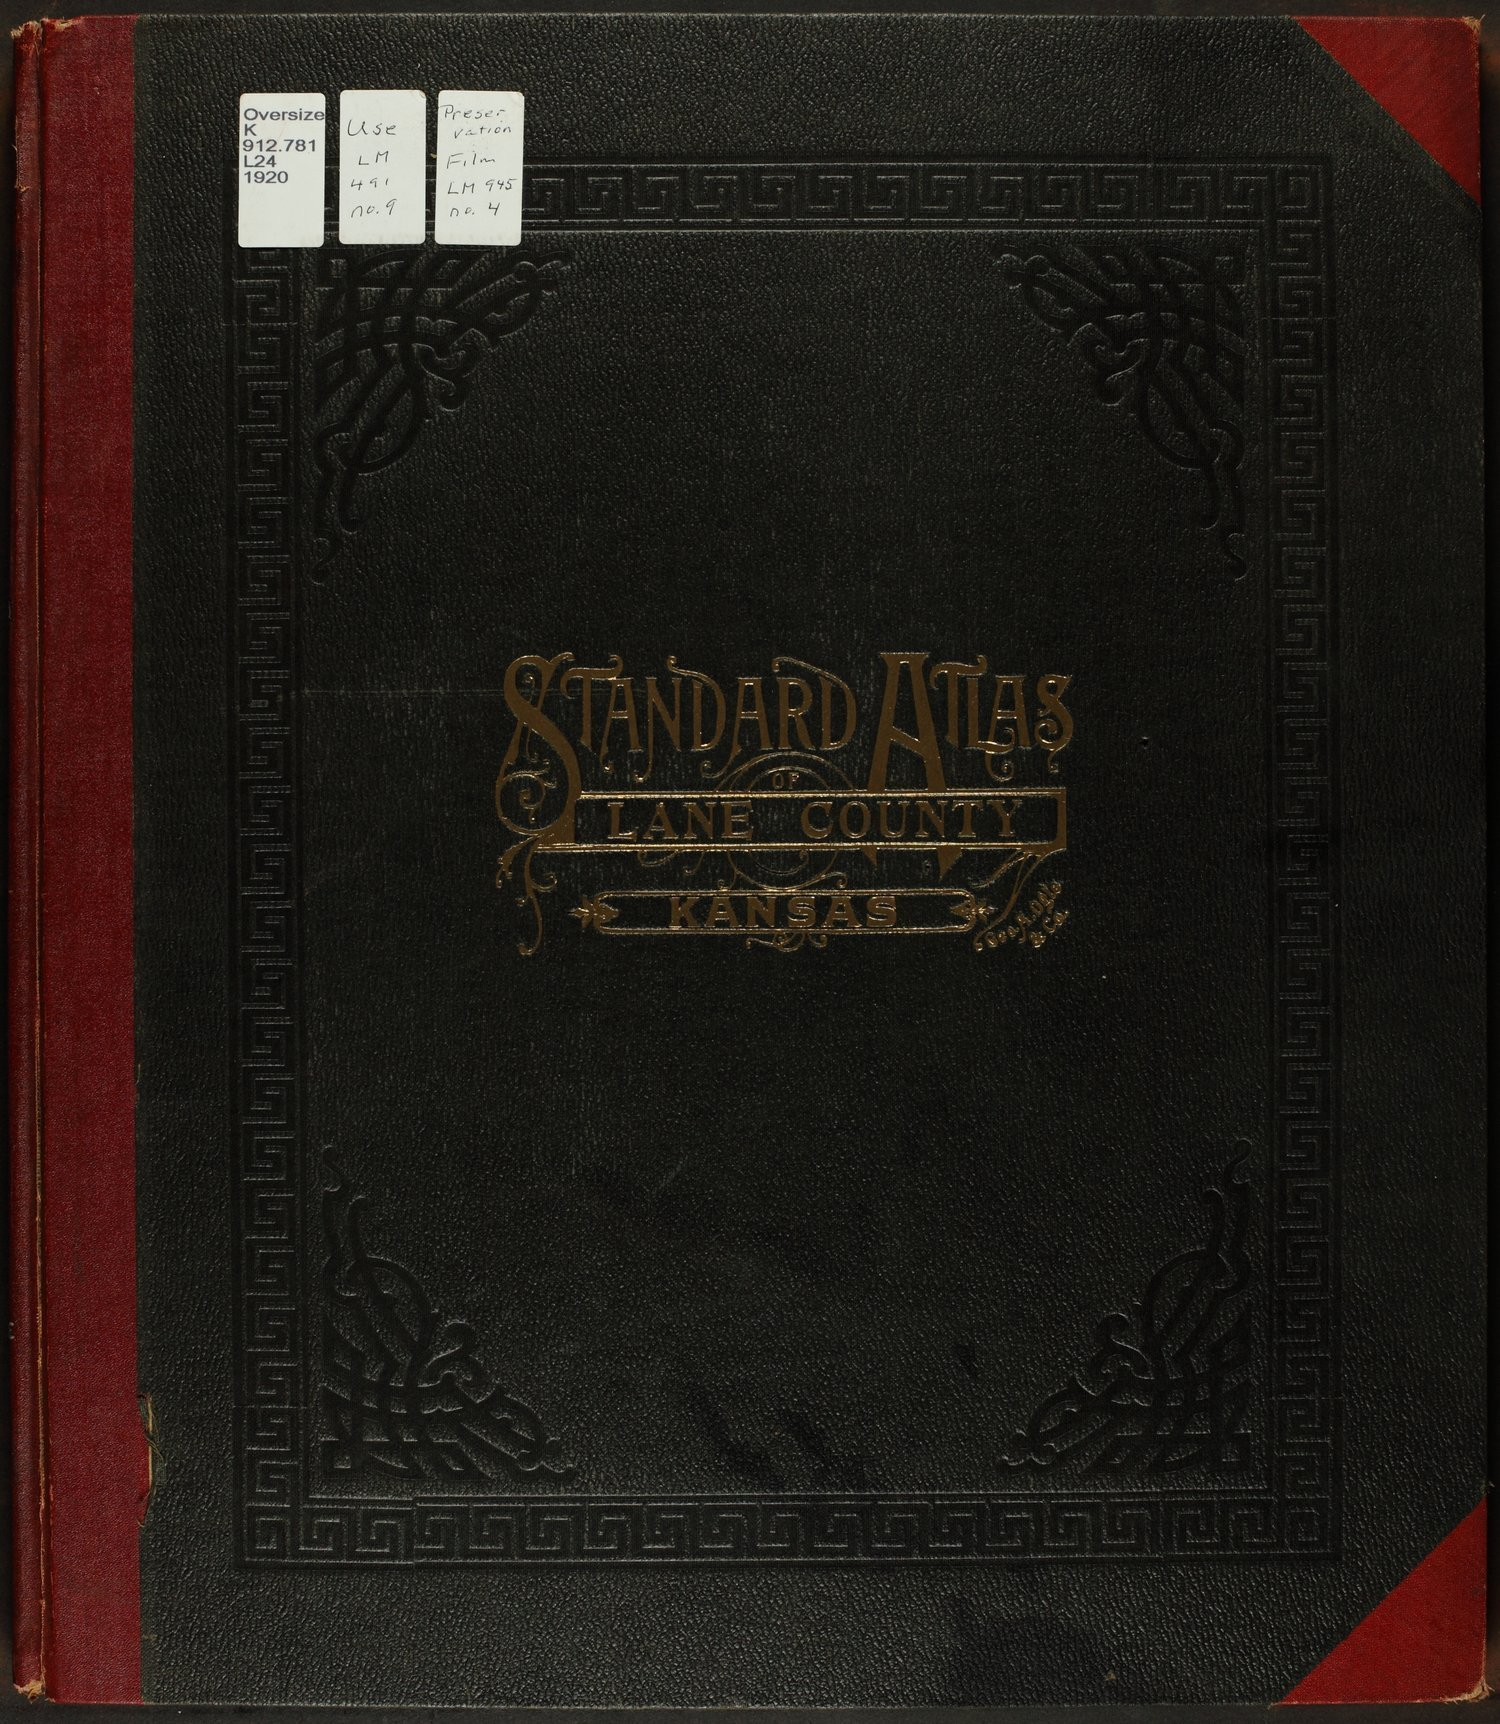 Standard atlas of Lane county, Kansas - Front Cover